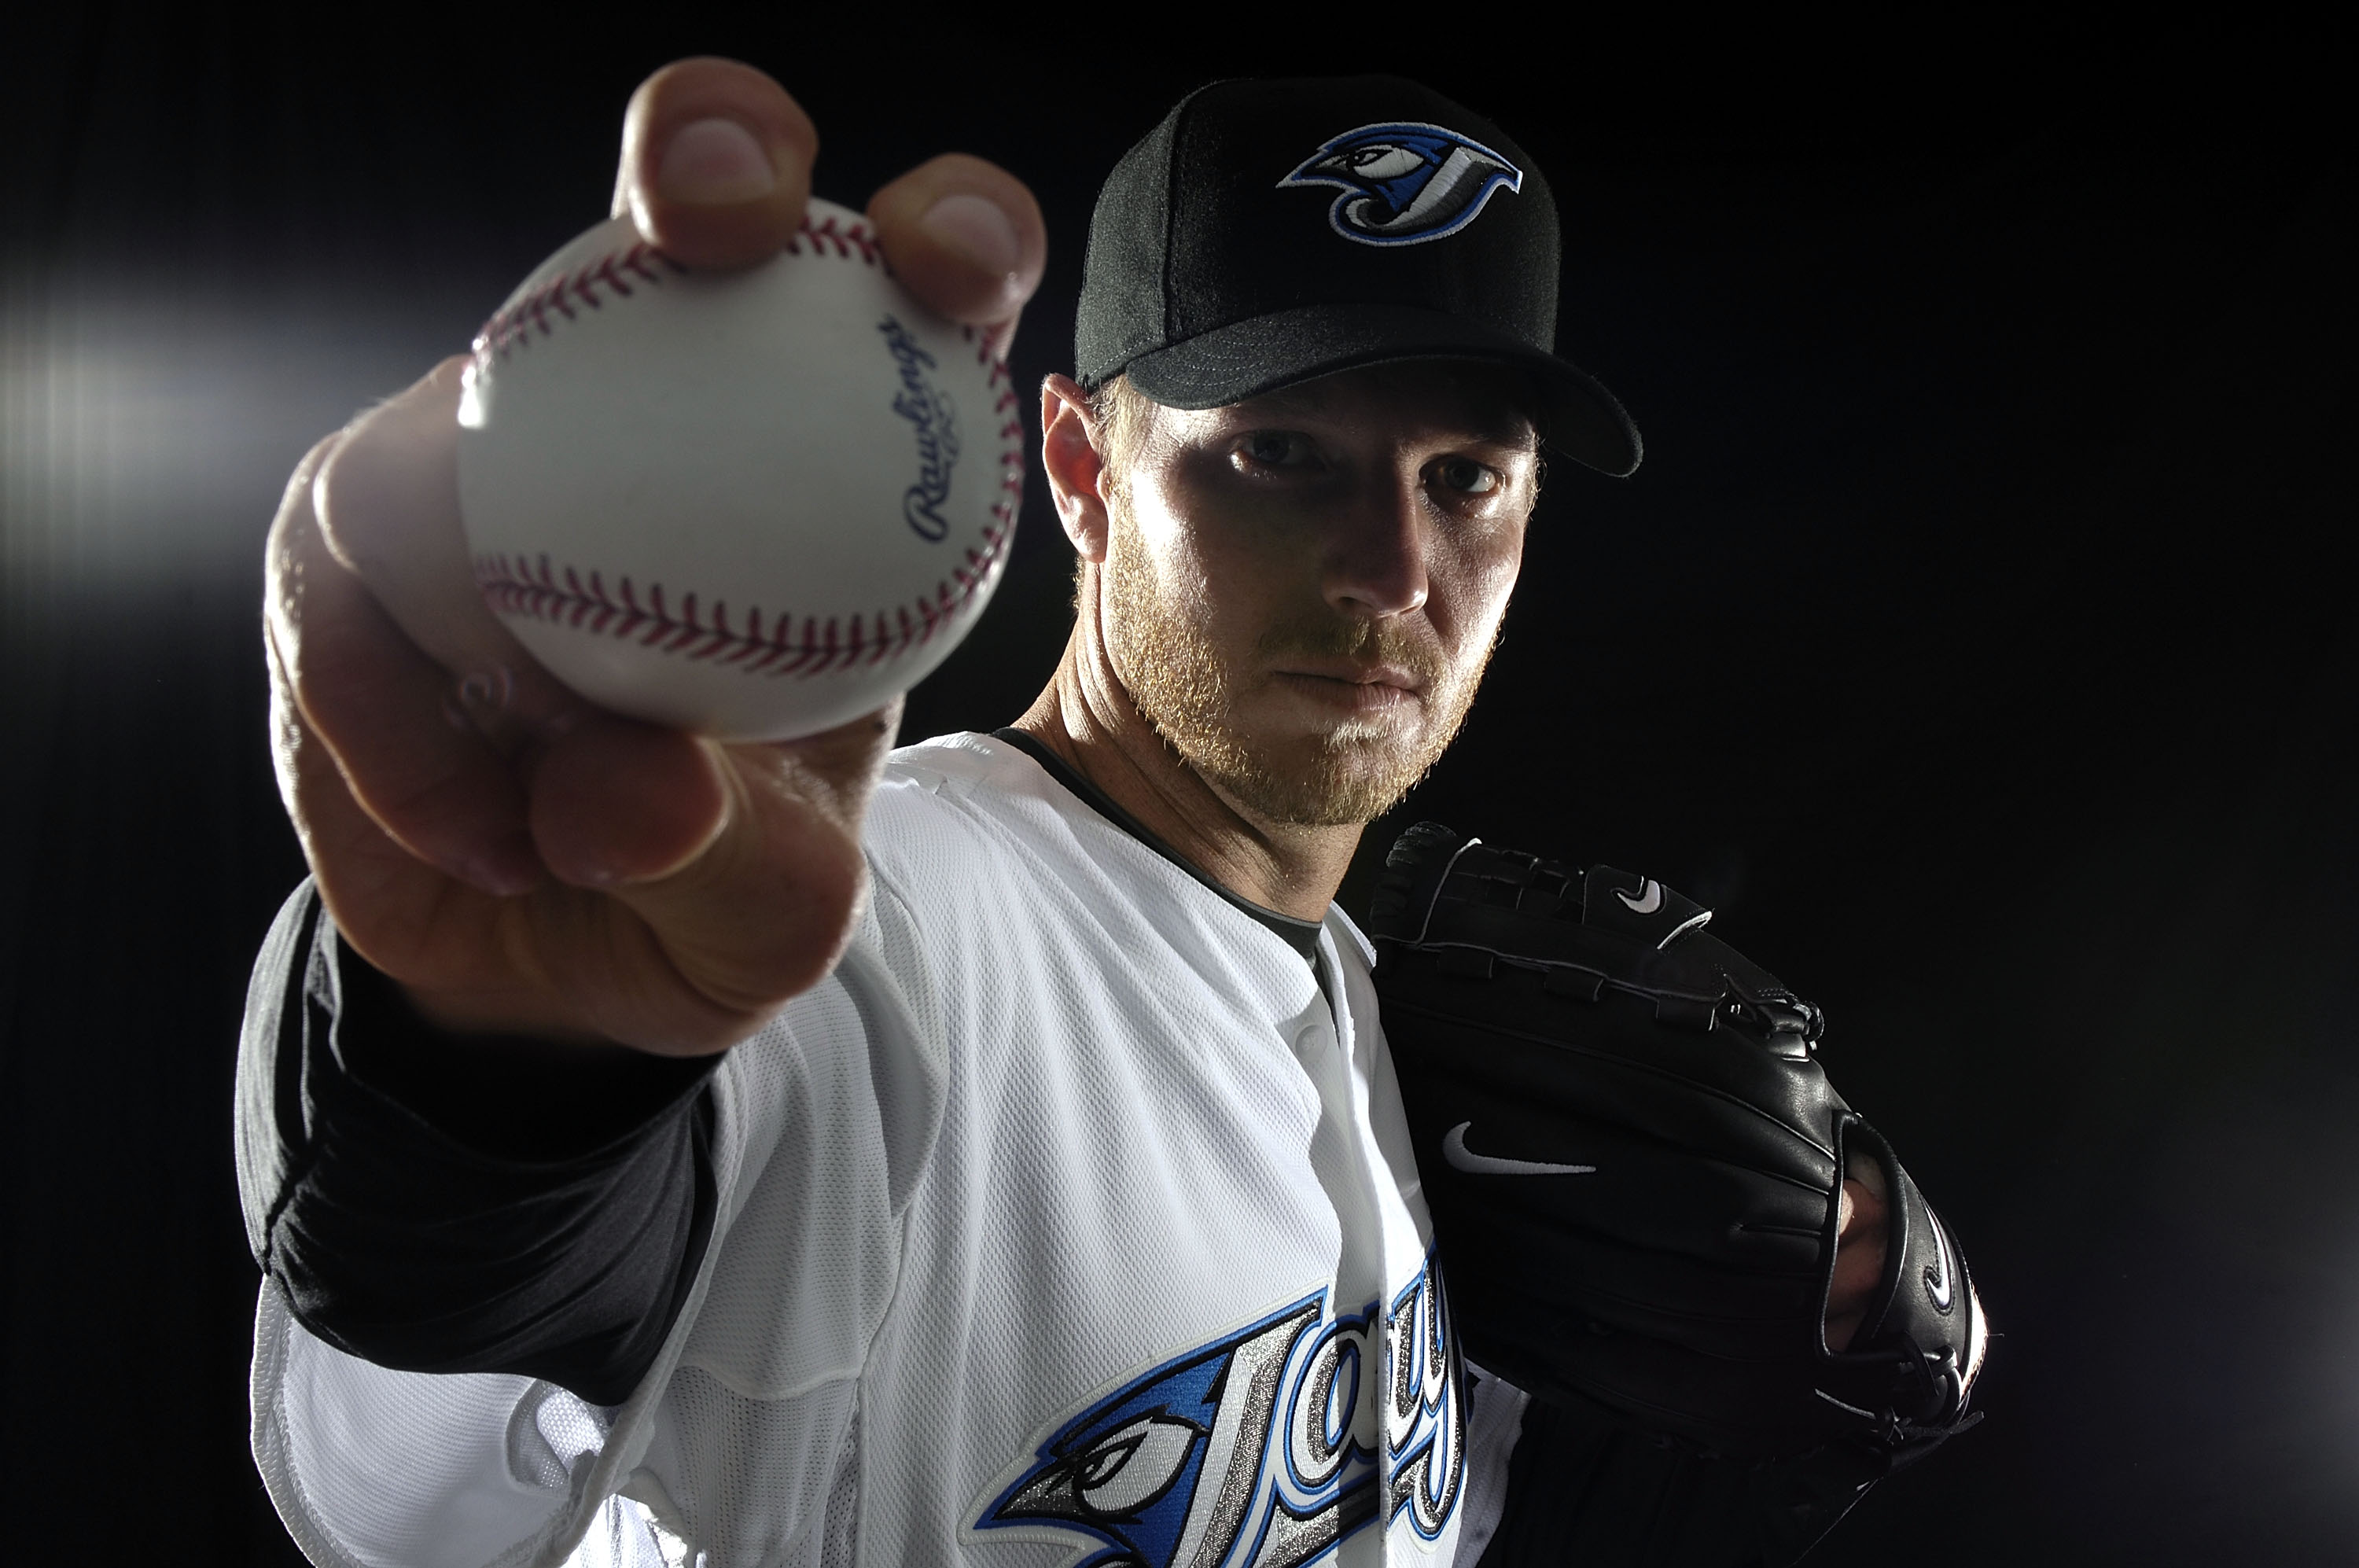 Pitcher Roy Halladay of the Toronto Blue Jays poses for a photo on media day in 2008